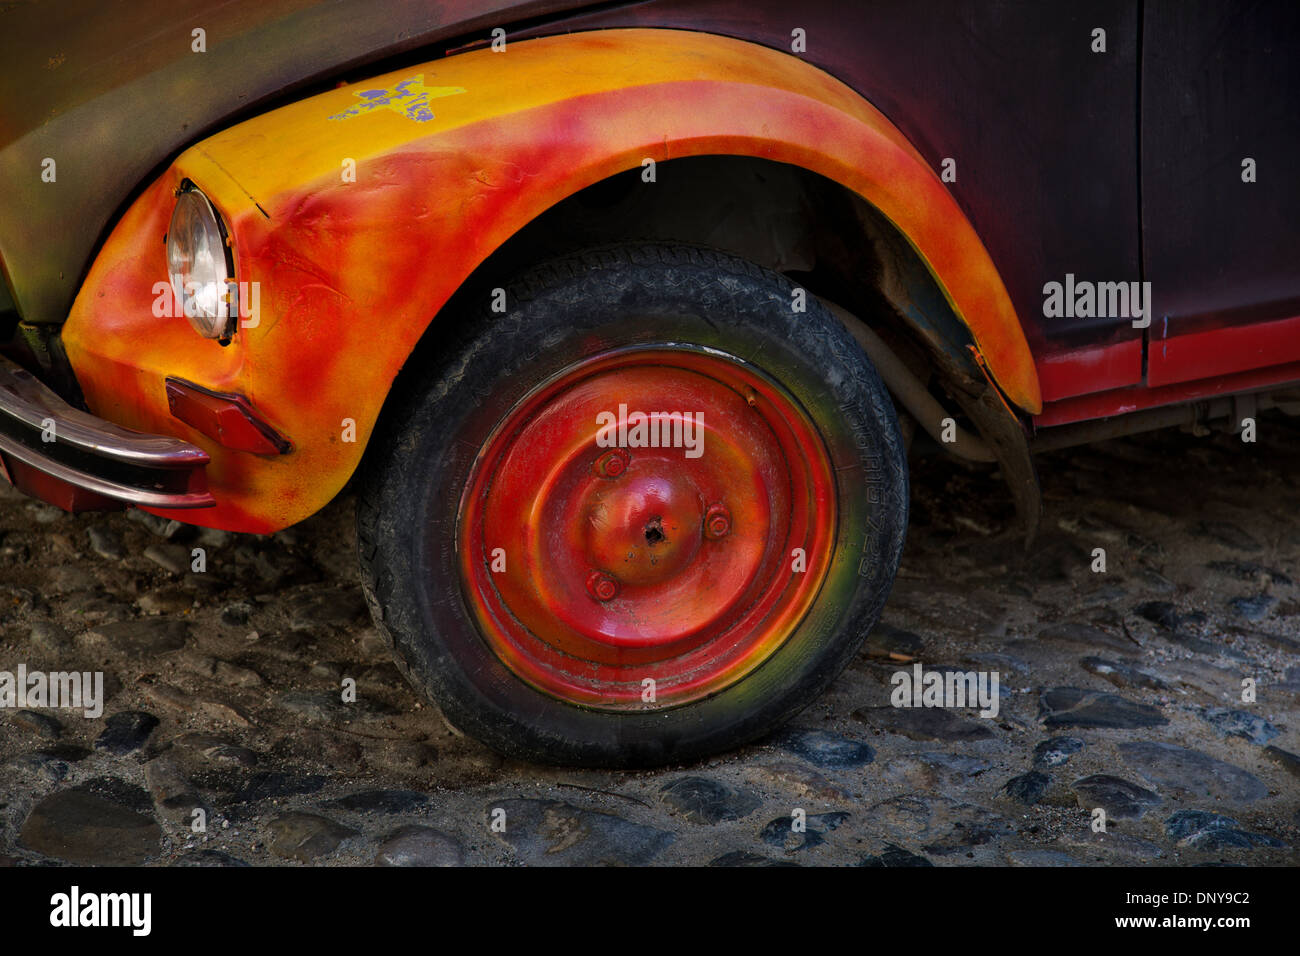 Brightly painted orange & yellow 2CV French car wheel on cobbled street, France - Stock Image